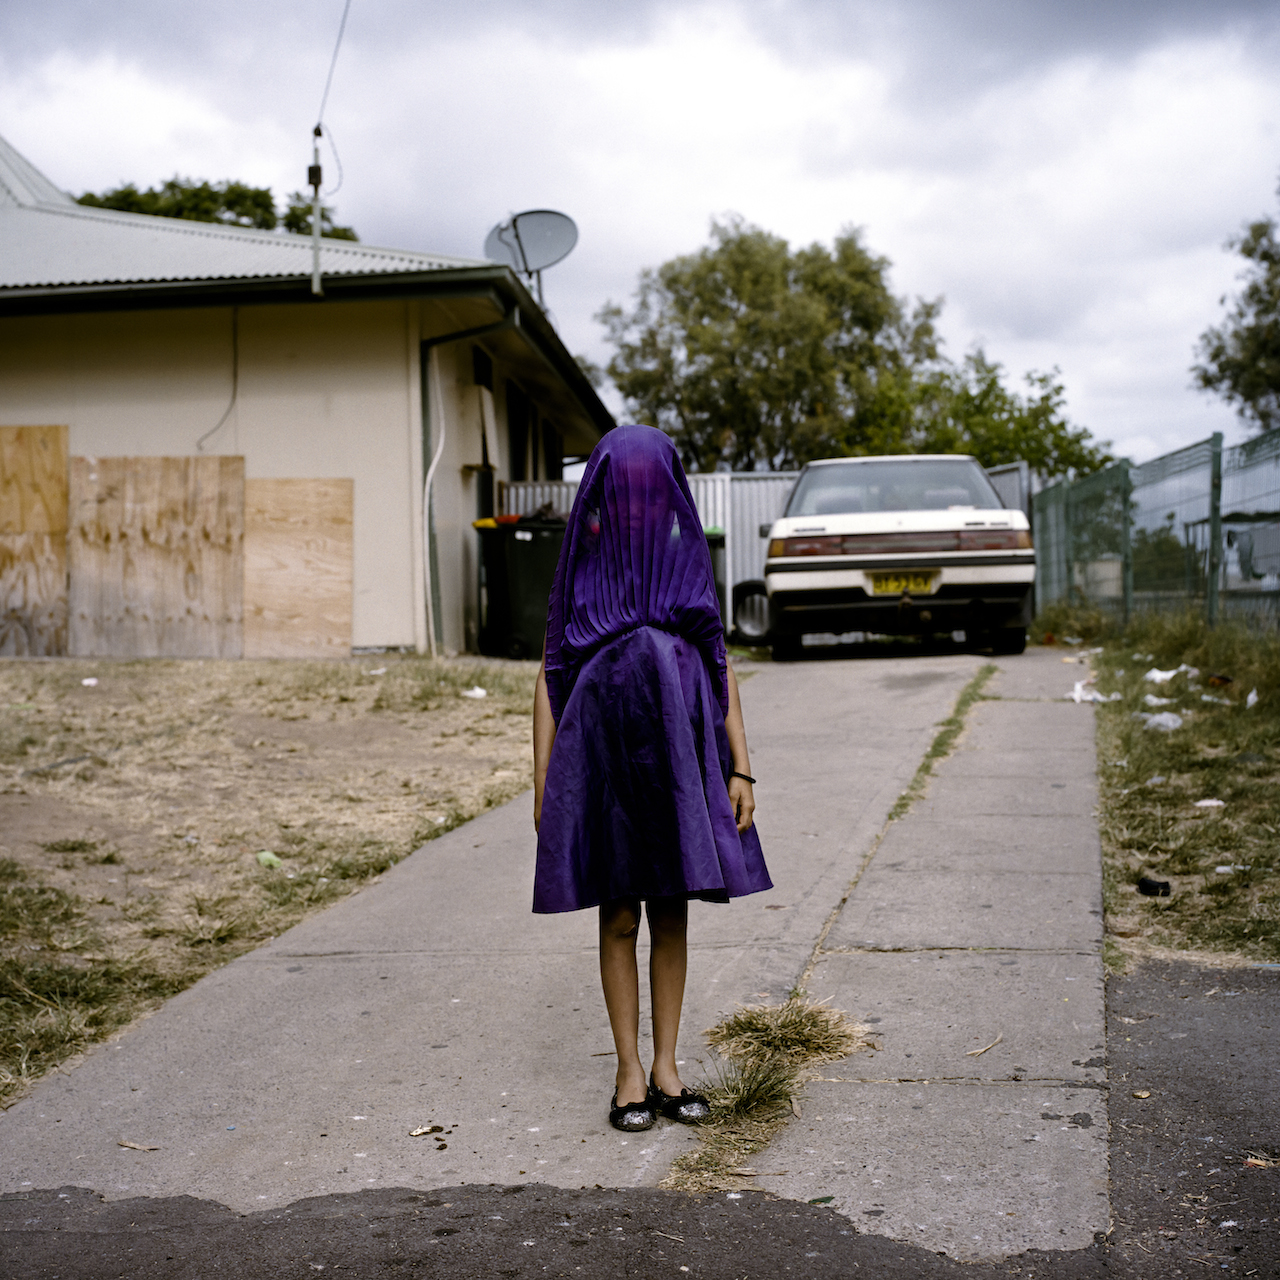 First Prize Portraits Category, Singles Raphaela Rosella, Australia, Oculi Moree, New South Wales, Australia Caption: Laurinda waits in her purple dress for the bus that will take her to Sunday School. She is among the many socially isolated young women in disadvantaged communities in Australia facing entrenched poverty, racism, trans-generational trauma, violence, addiction, and a range of other barriers to health and well-being.